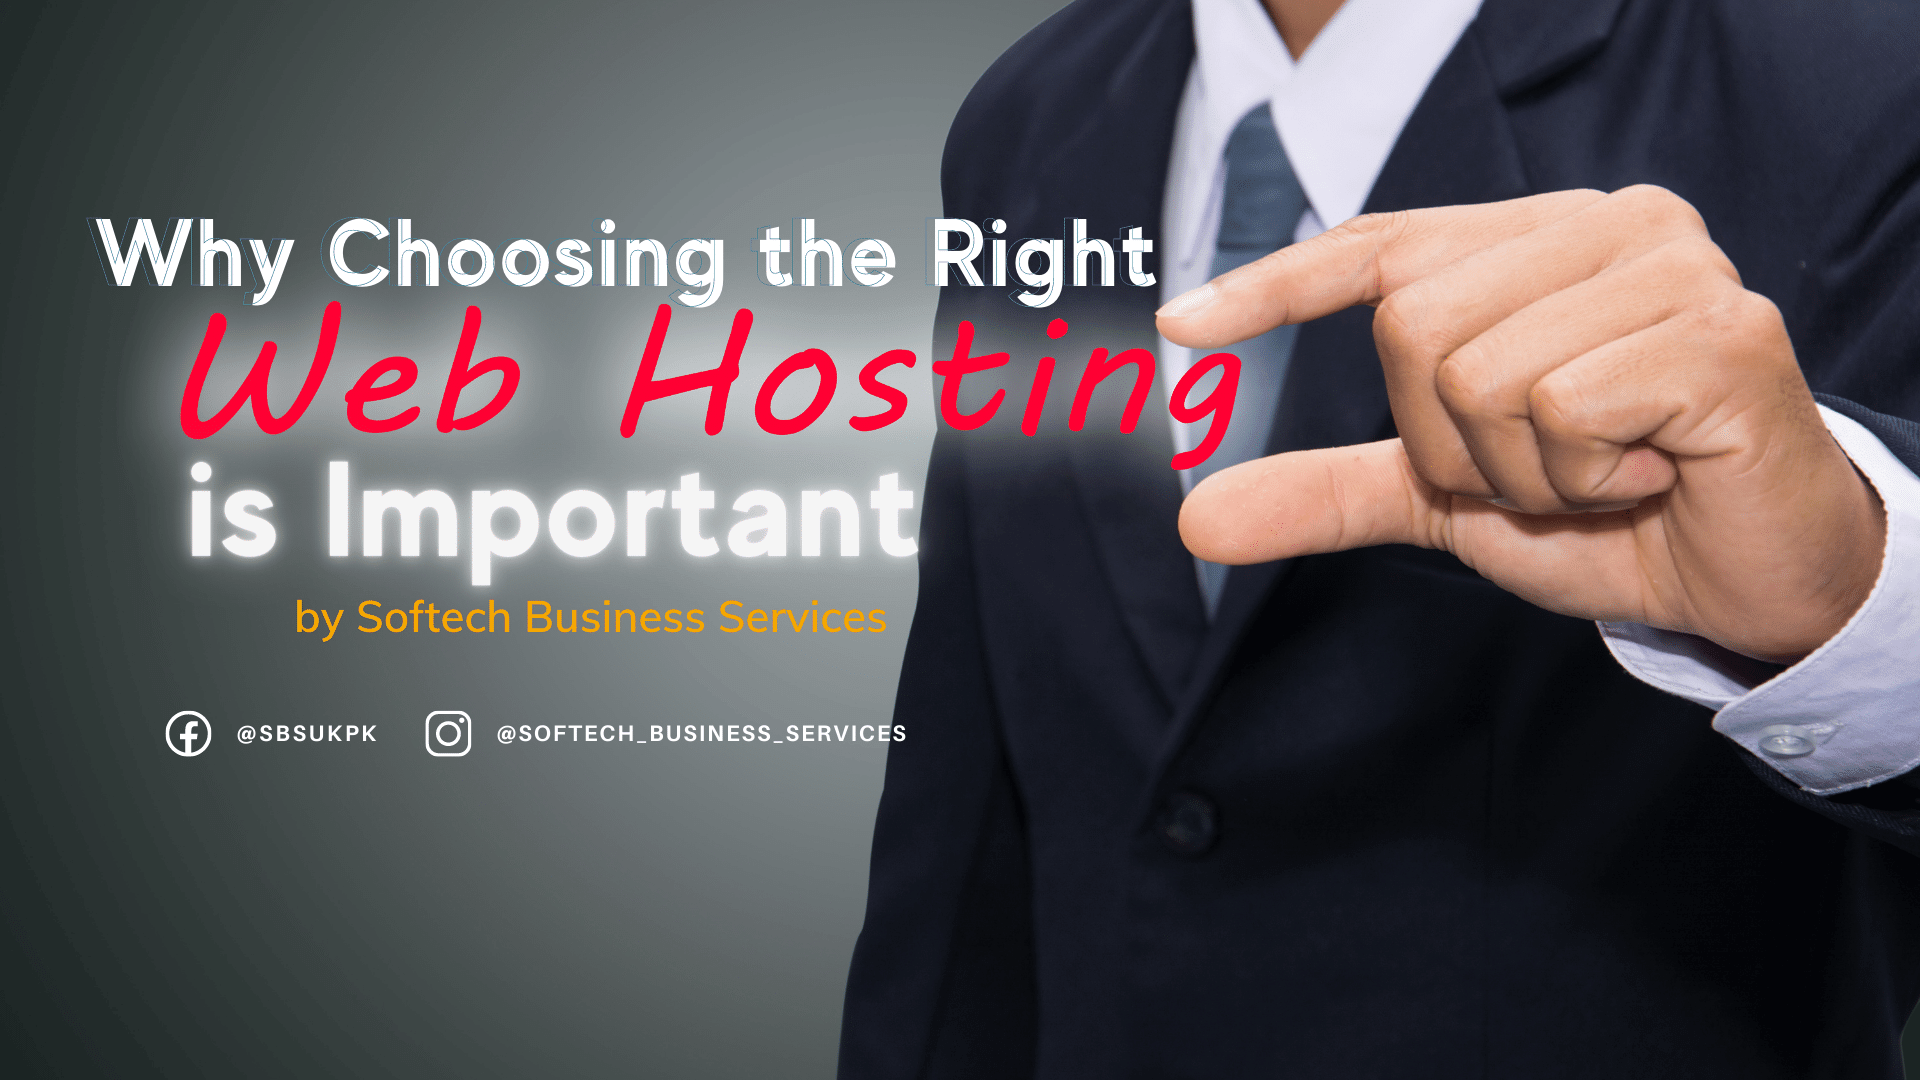 Why Choosing the Right Web Host is Important